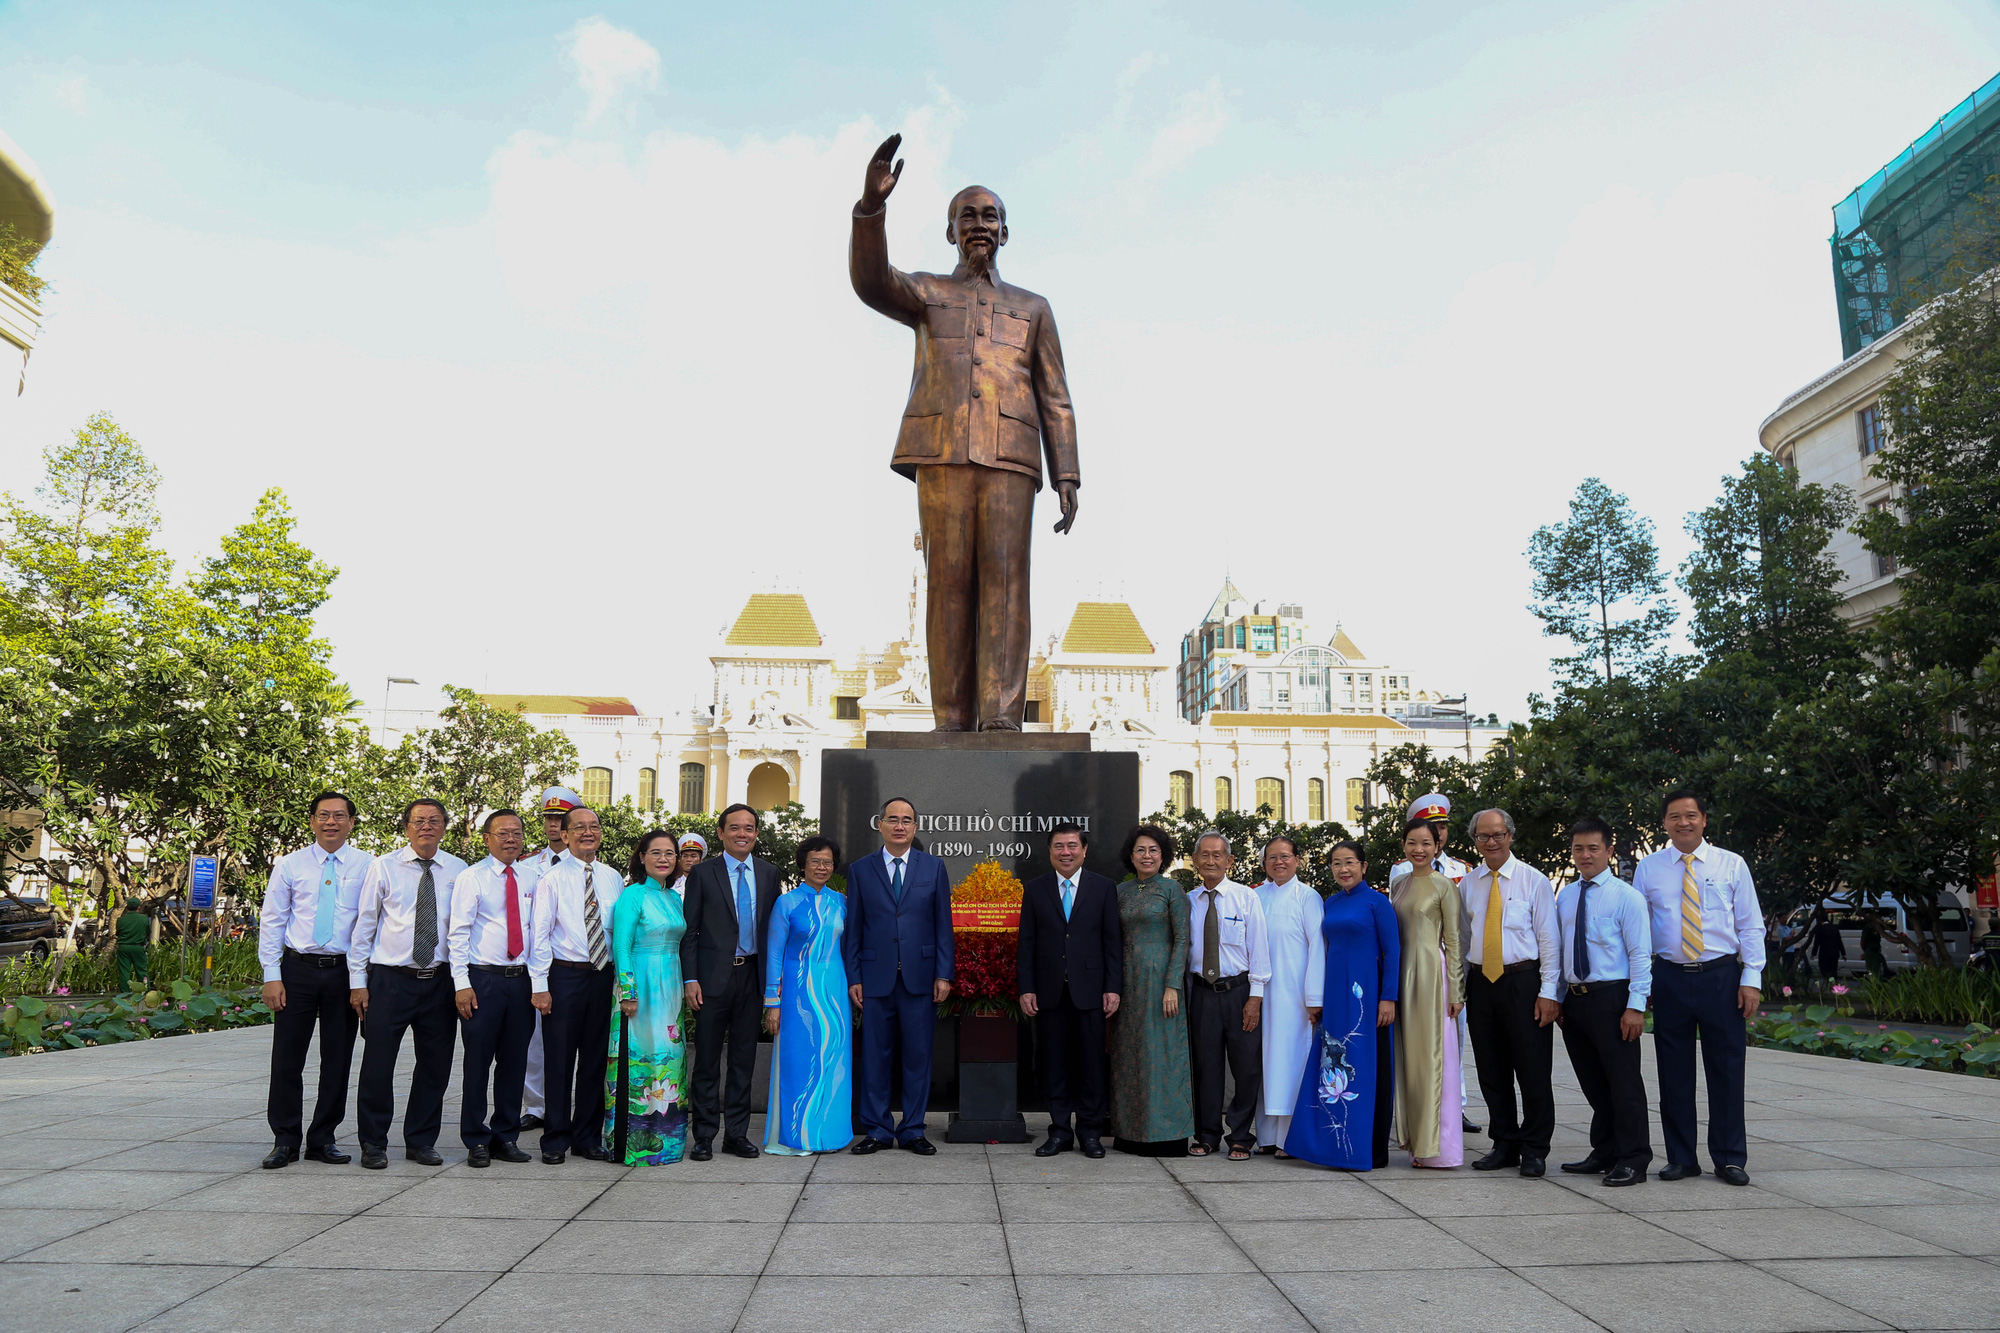 City leaders pay respect to late President Ho Chi Minh on 130th birthday